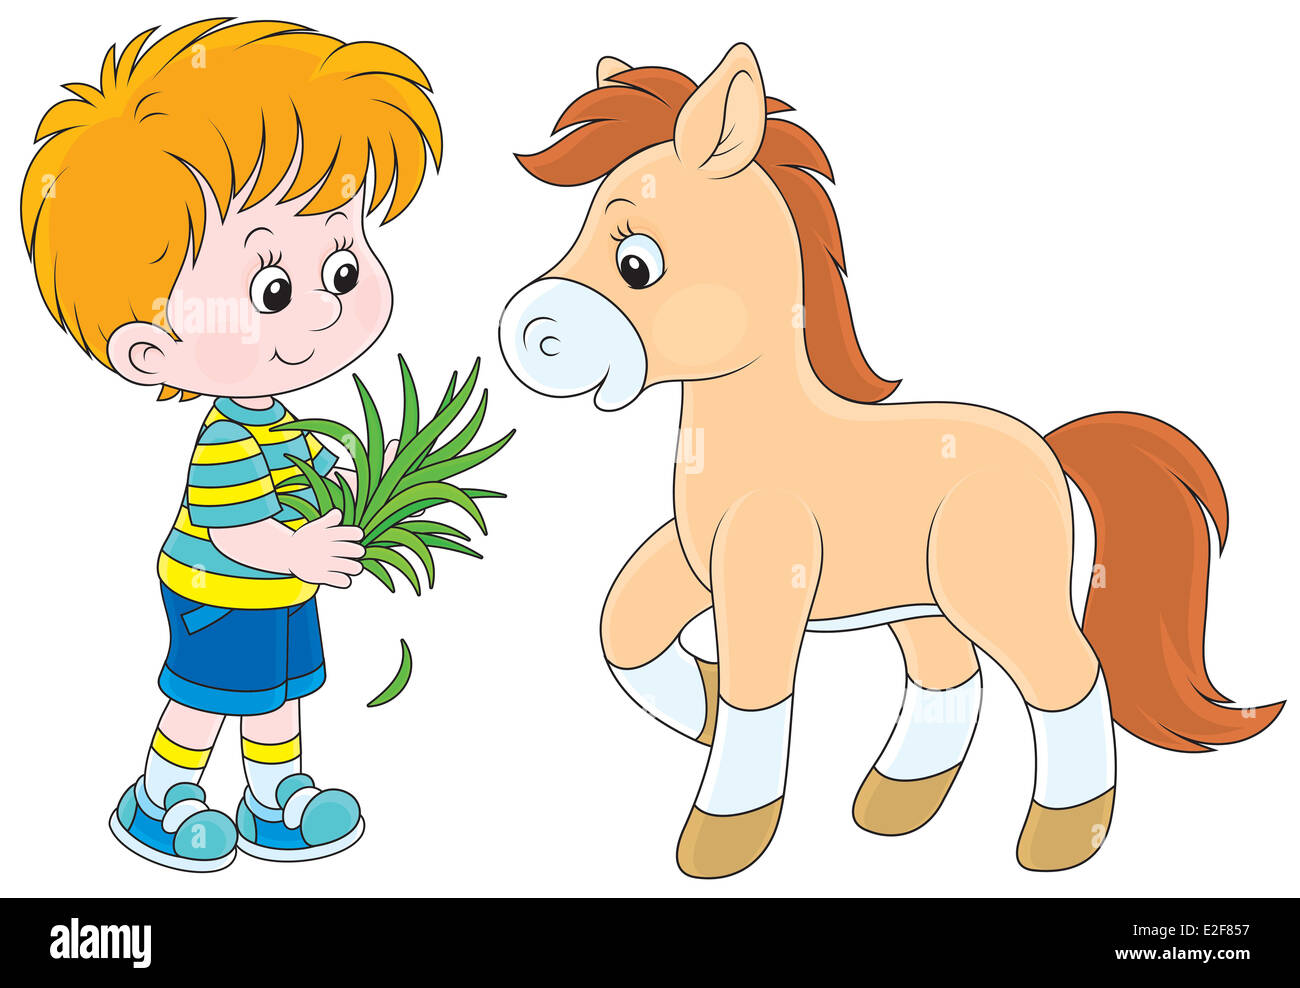 Little boy feeding a pony with grass - Stock Image